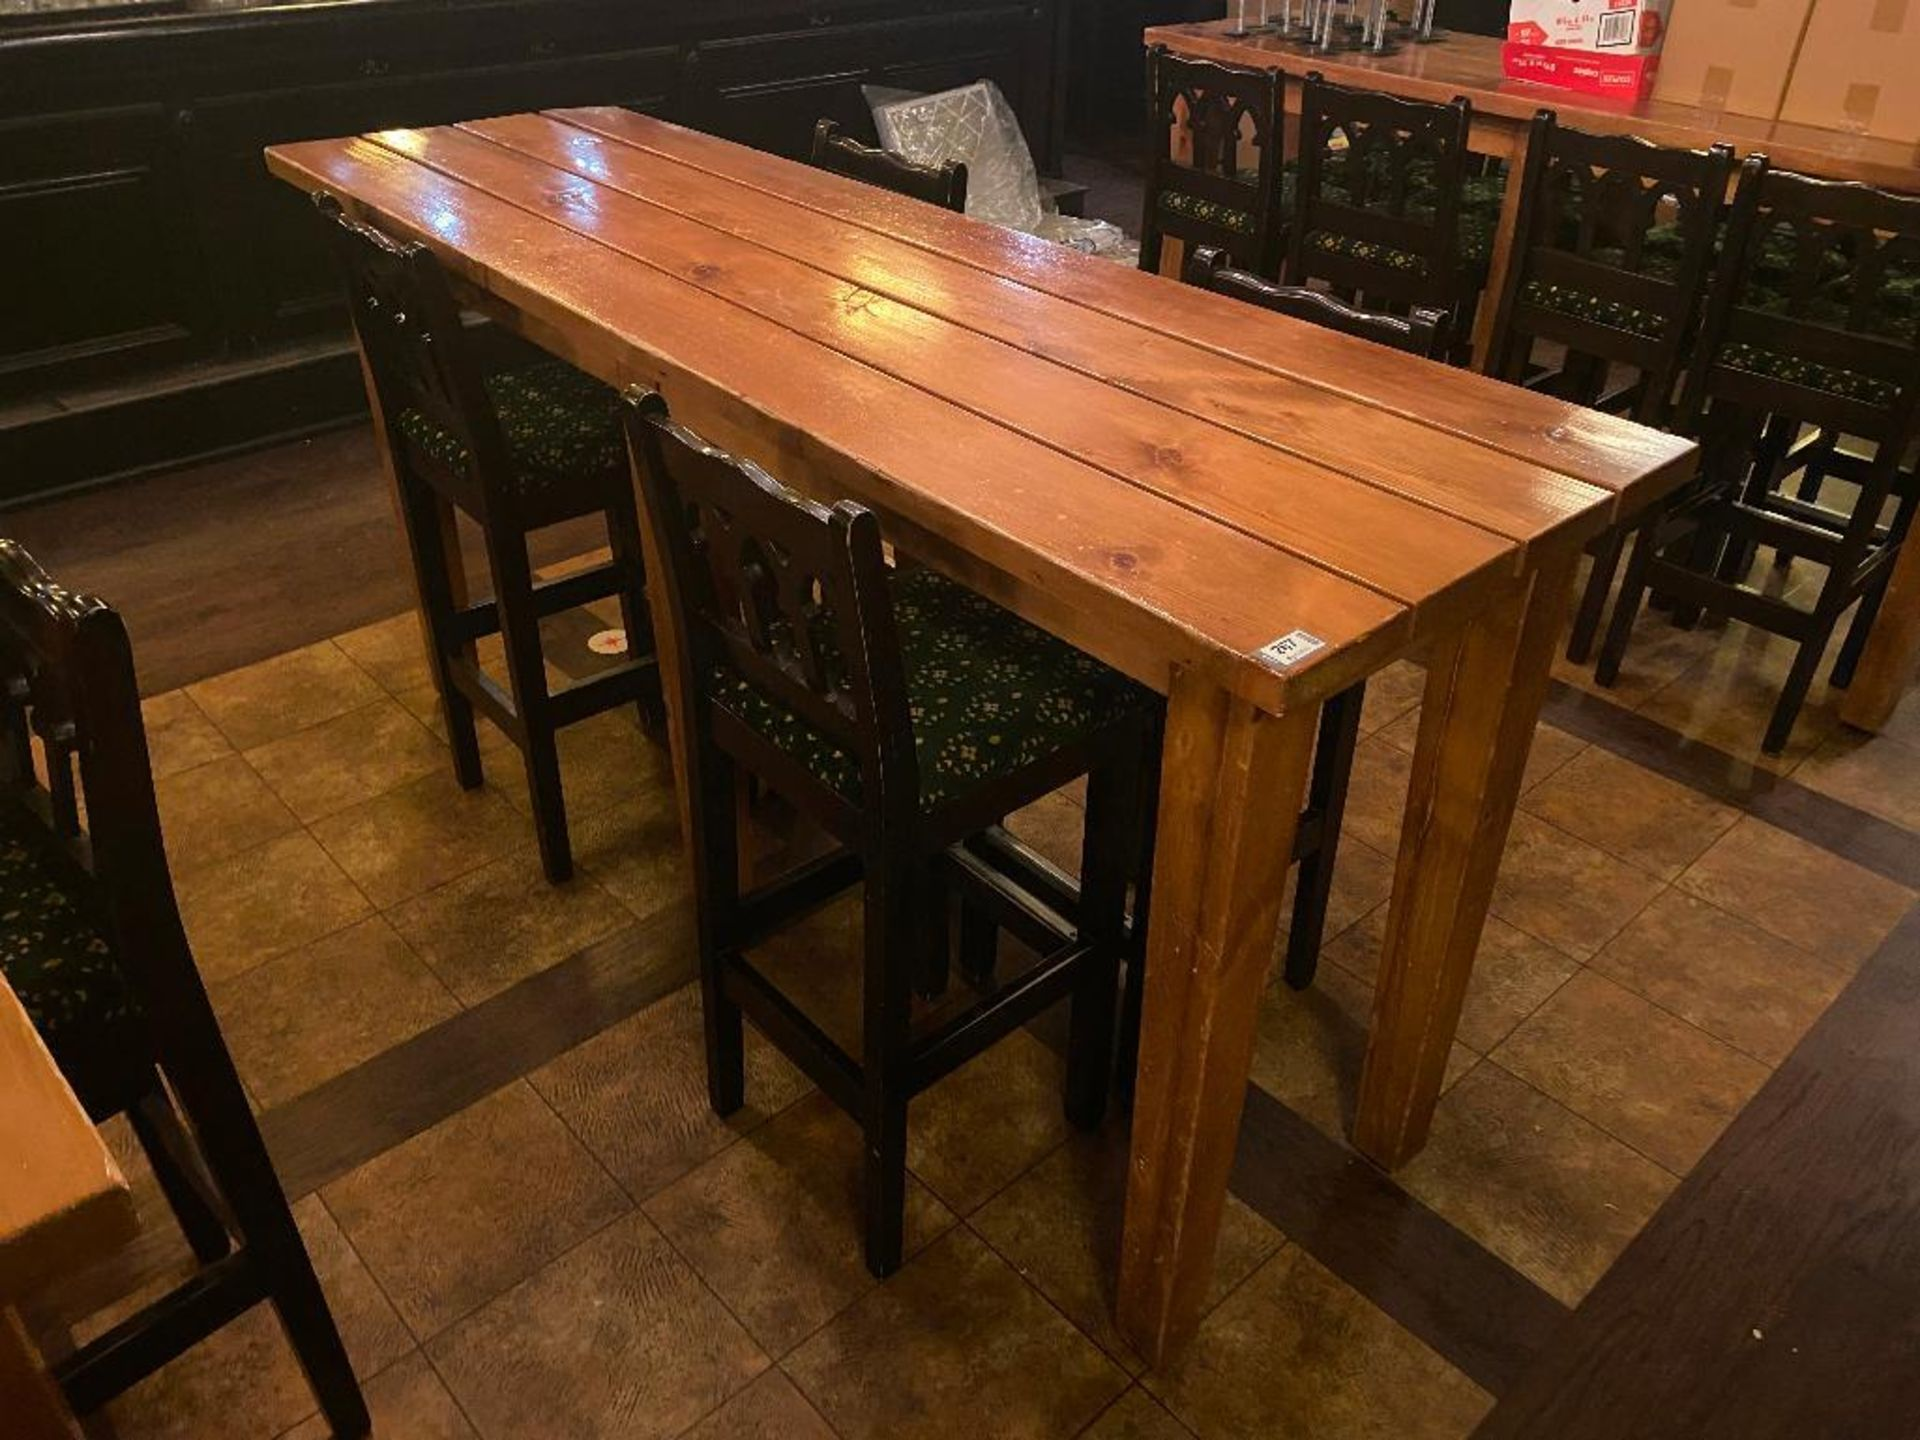 7' WOOD BAR HEIGHT TABLE WITH 4 BAR HEIGHT CHAIRS - Image 2 of 3